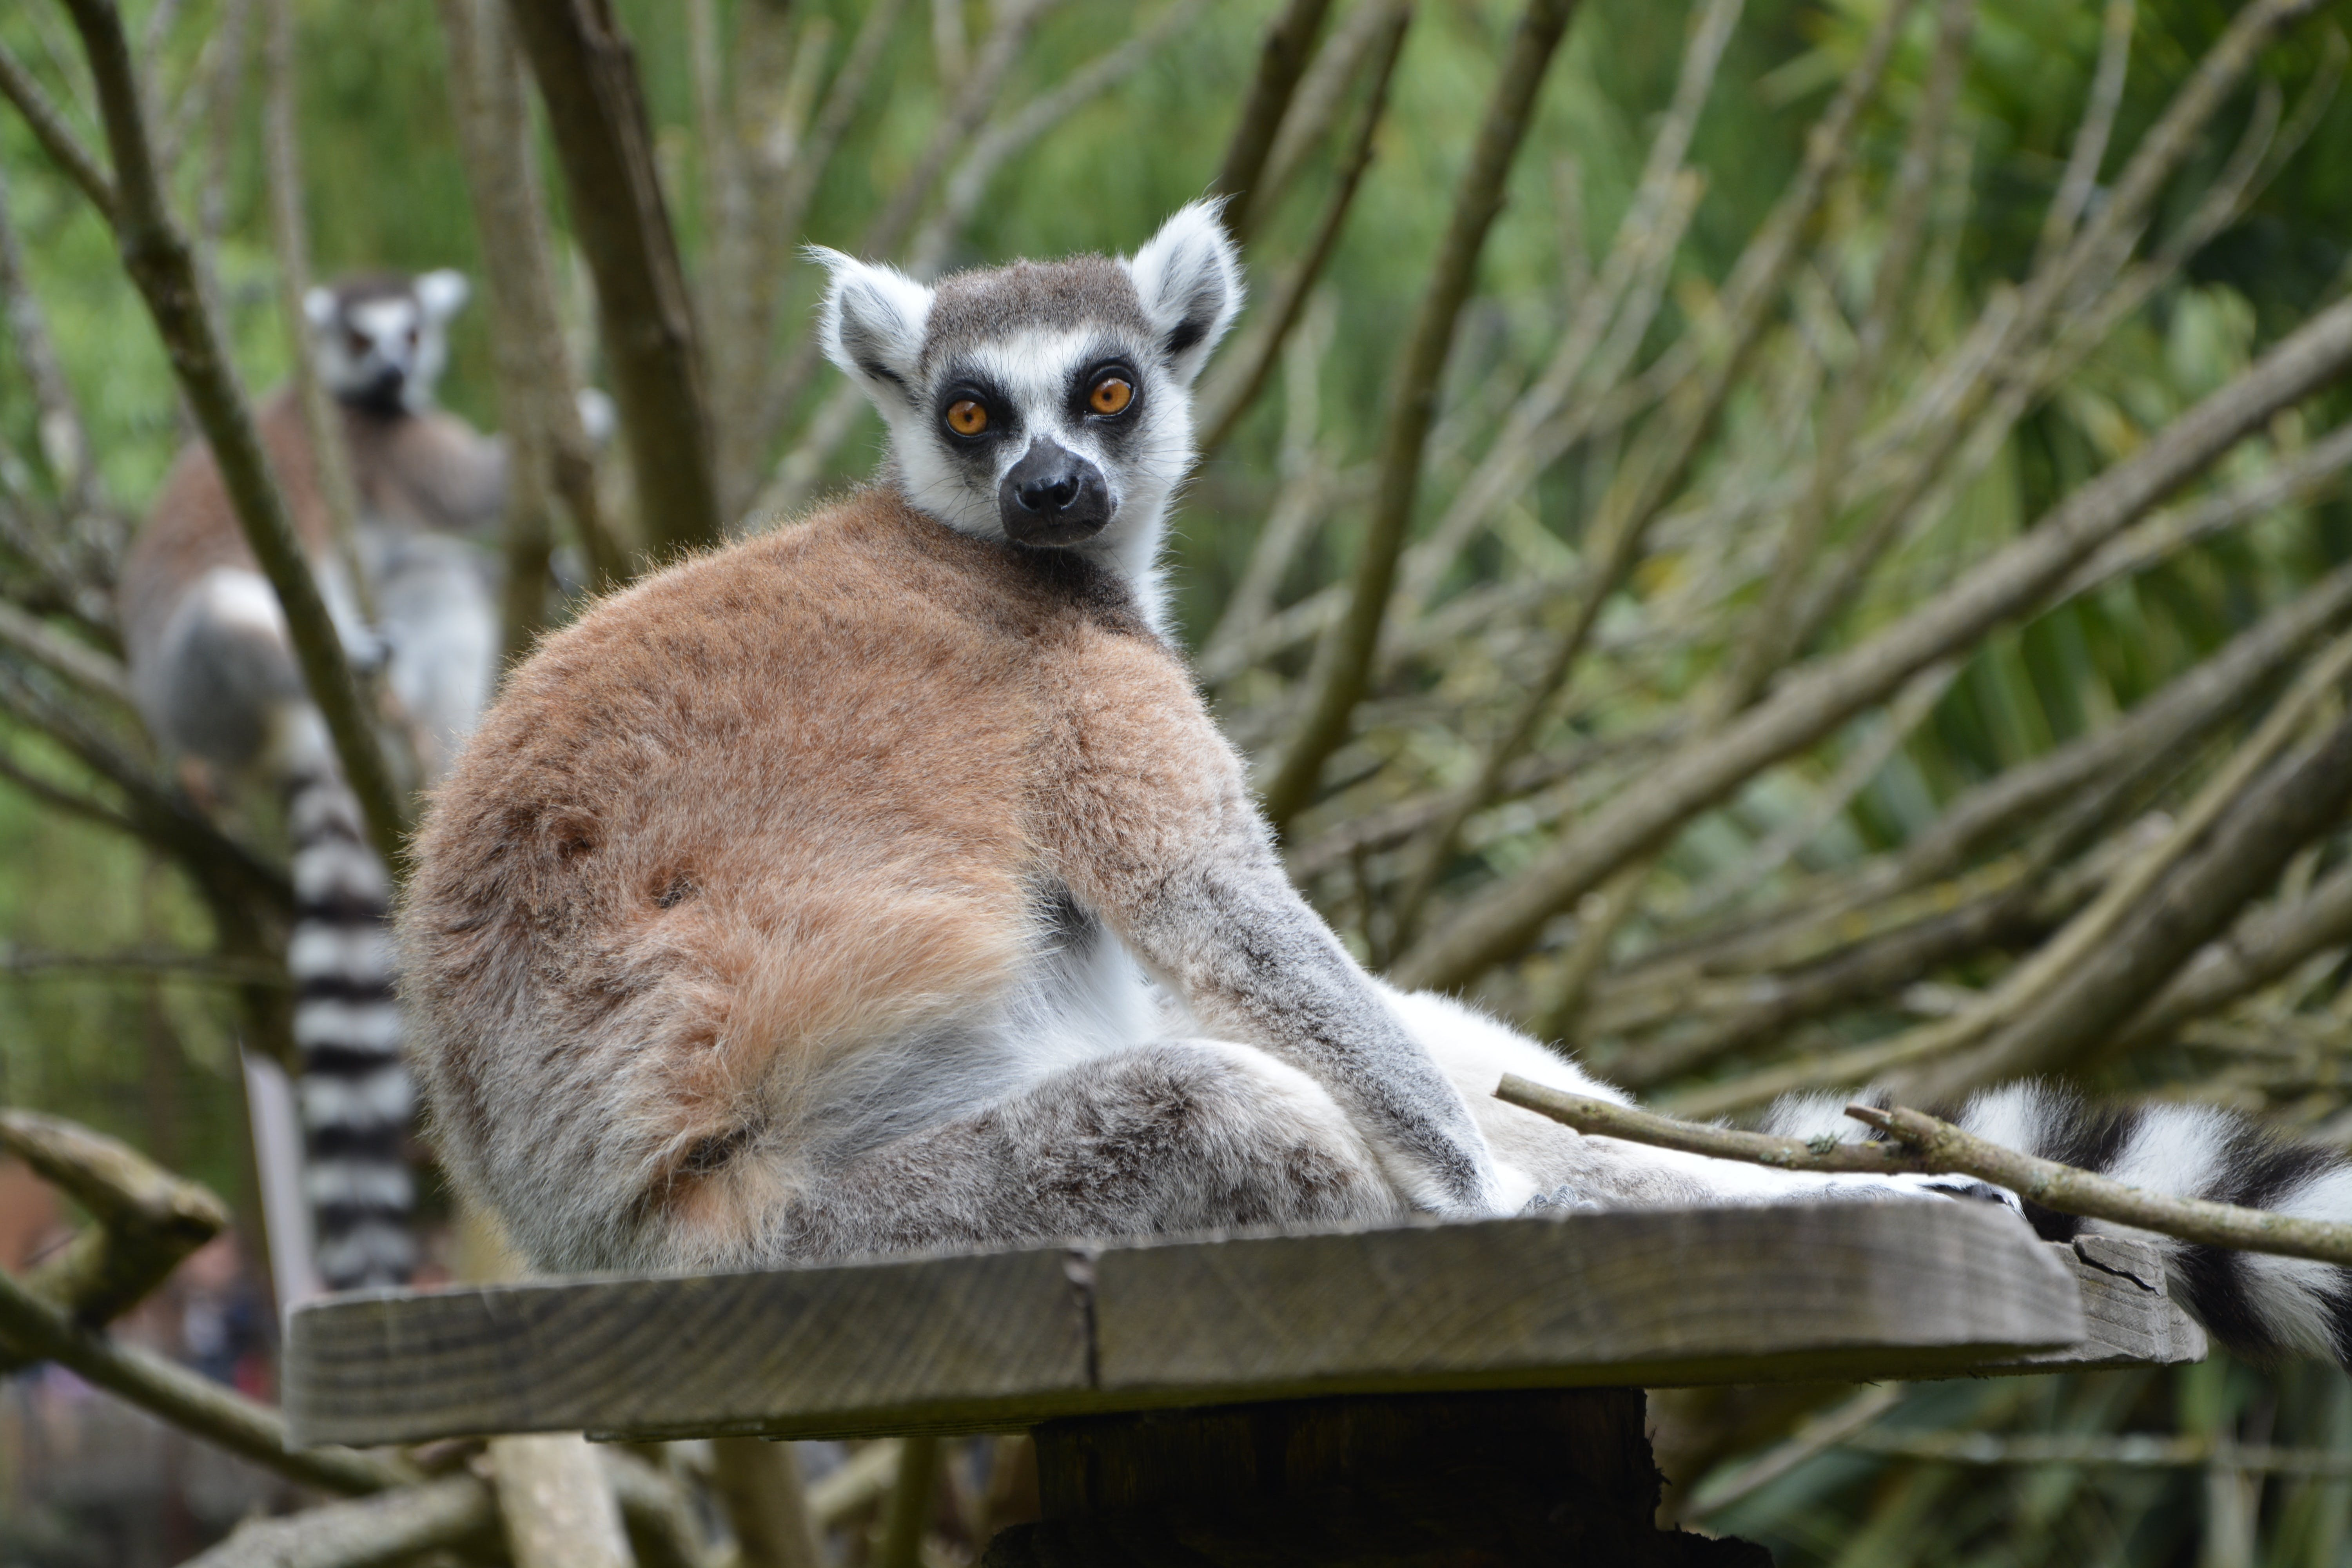 Ring-tailed Lemur on Wooden Table